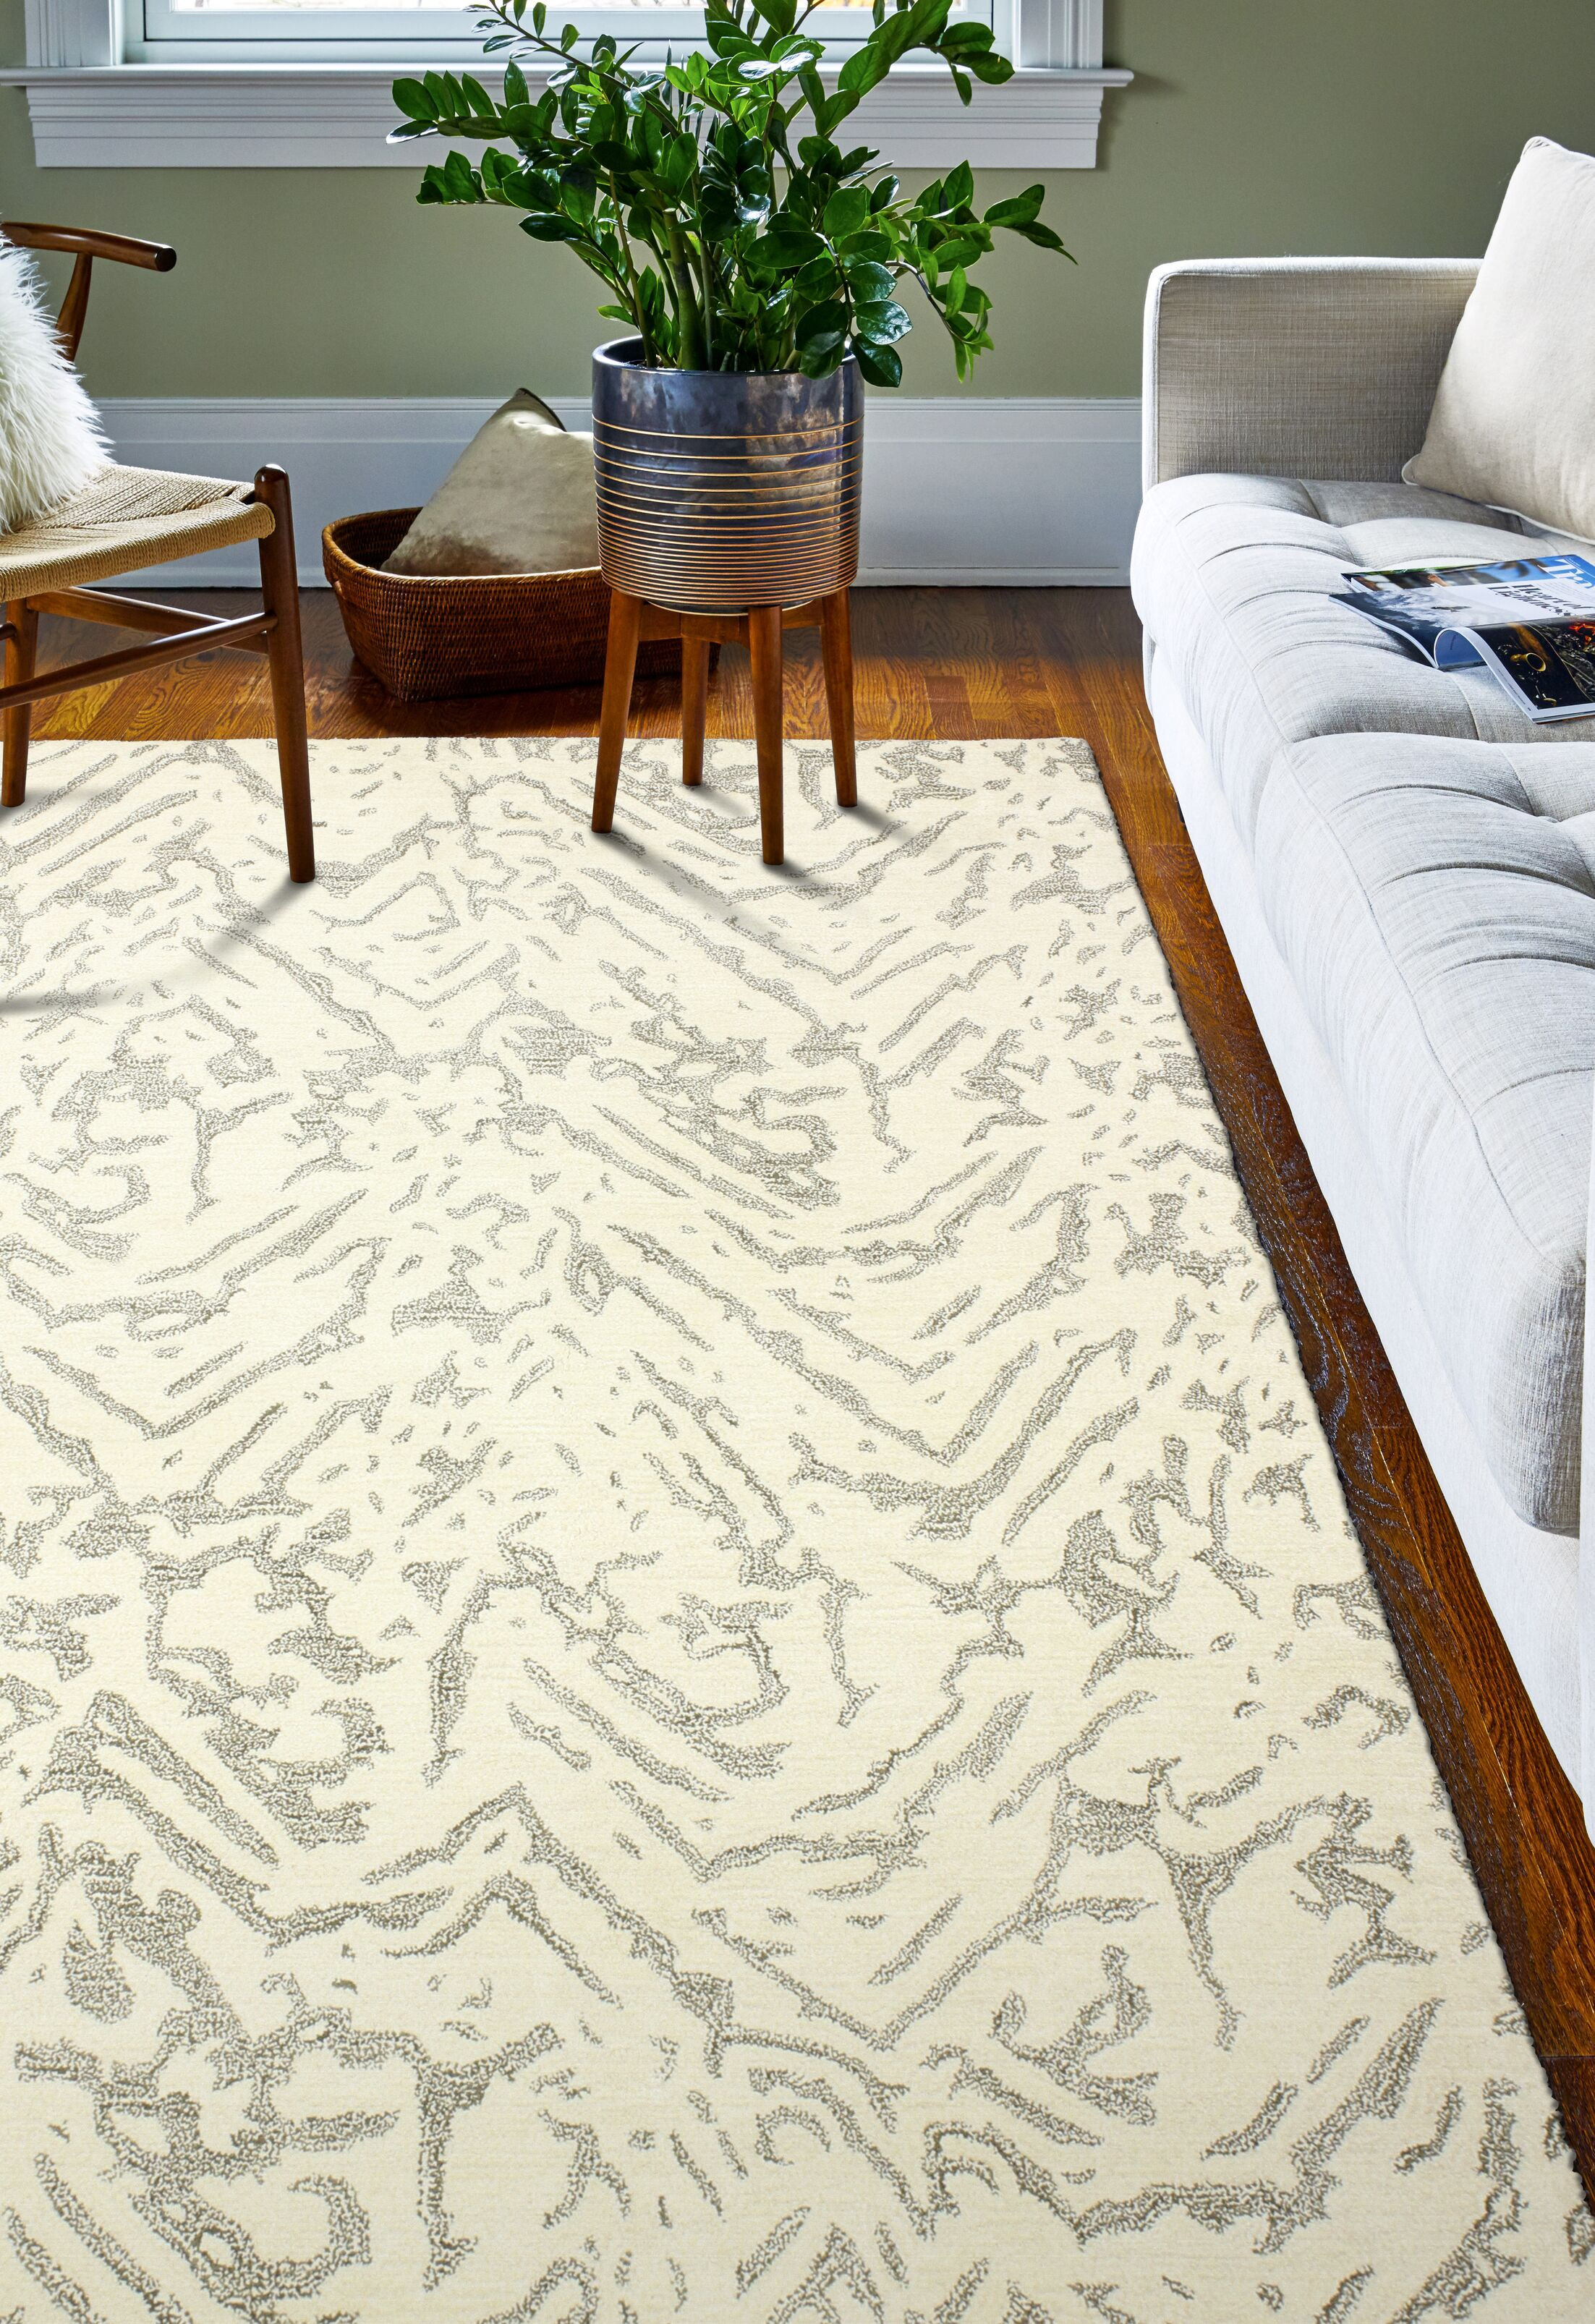 Jared Hand-Tufted White Area Rug Rug Size: 8' x 10'